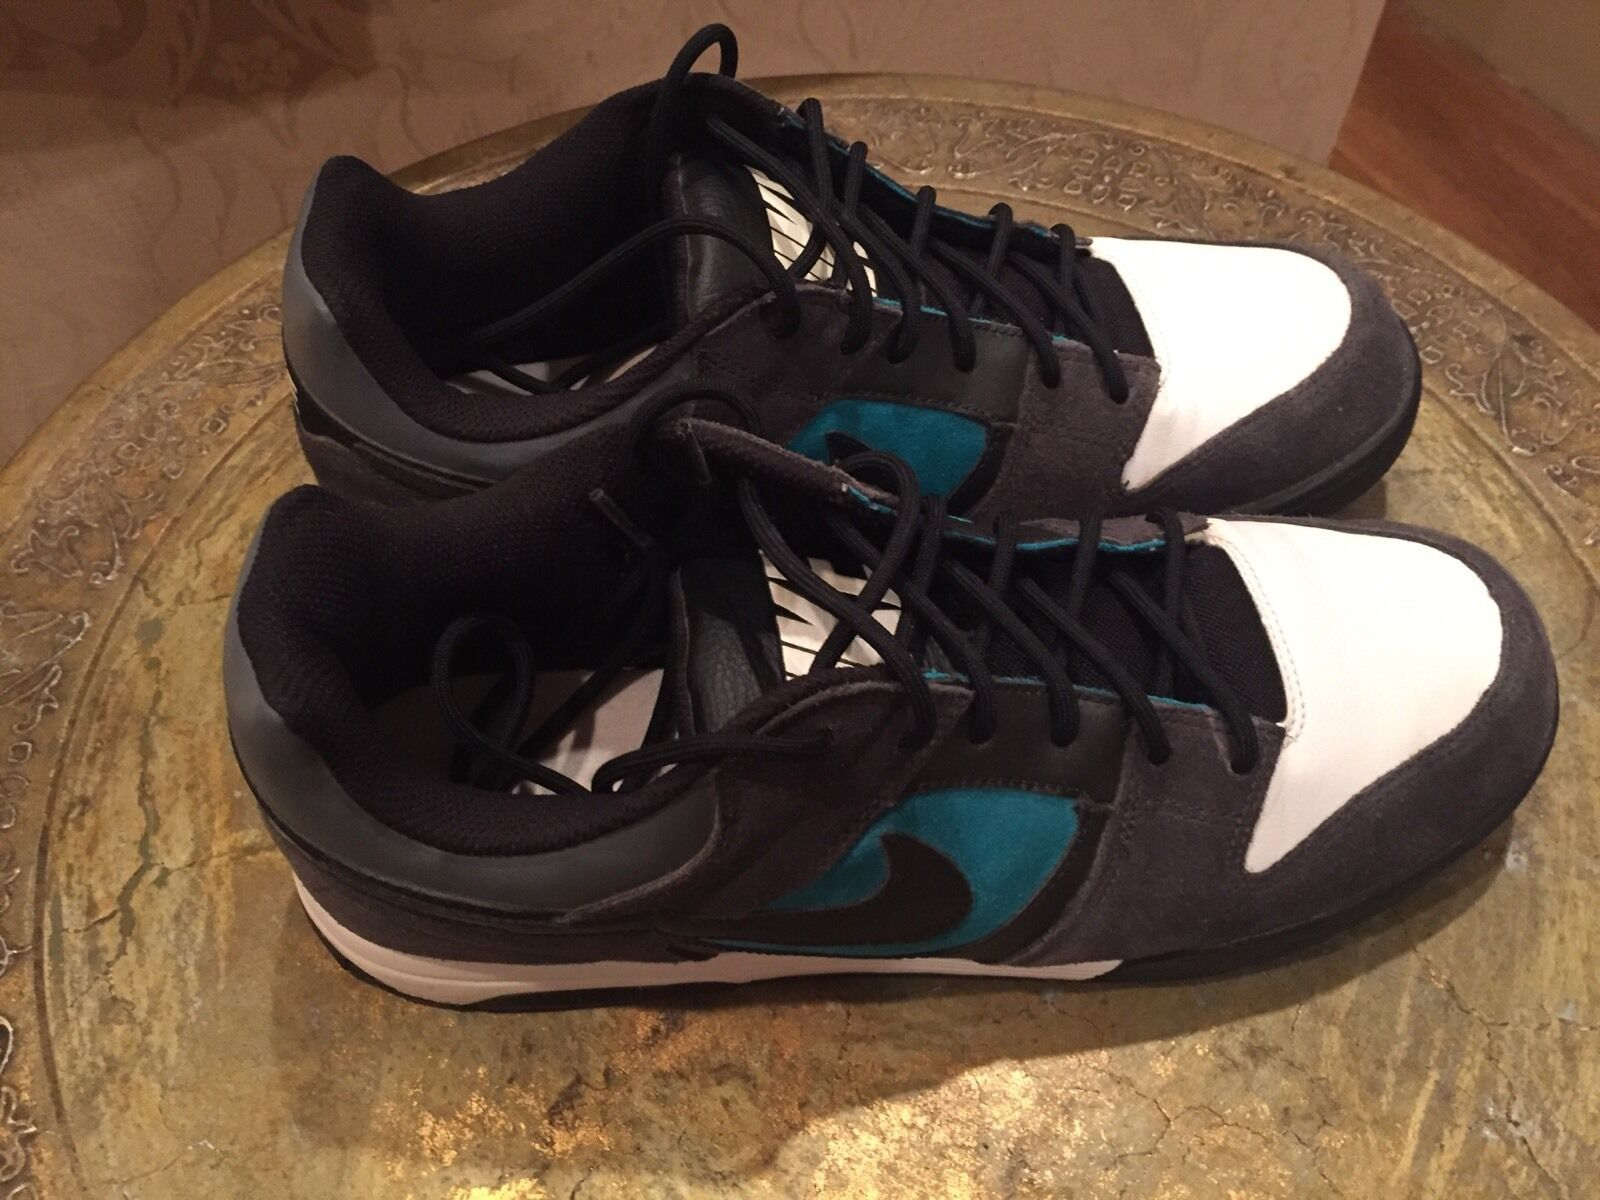 NIKE Air Twilight- Low  Turbo Green  VNDS - Size 11.5 - FREE FedEX Ground Ship